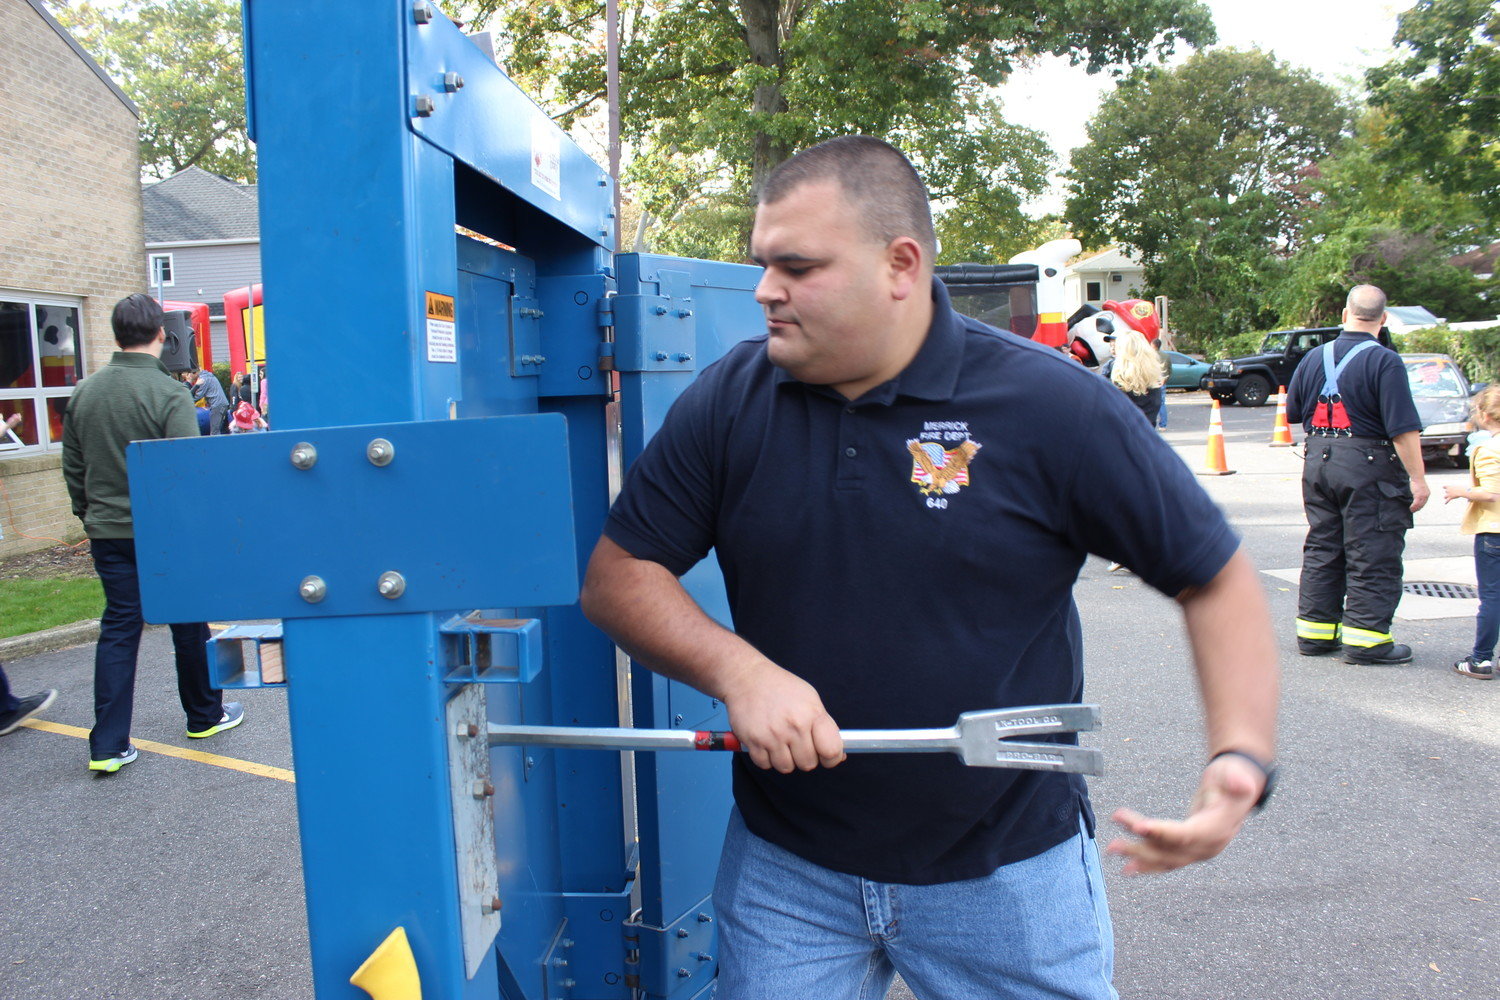 Captain Jeffrey Monsen, of the Merrick Fire Department, simulated the process of breaking into a locked door using a Halligan bar.